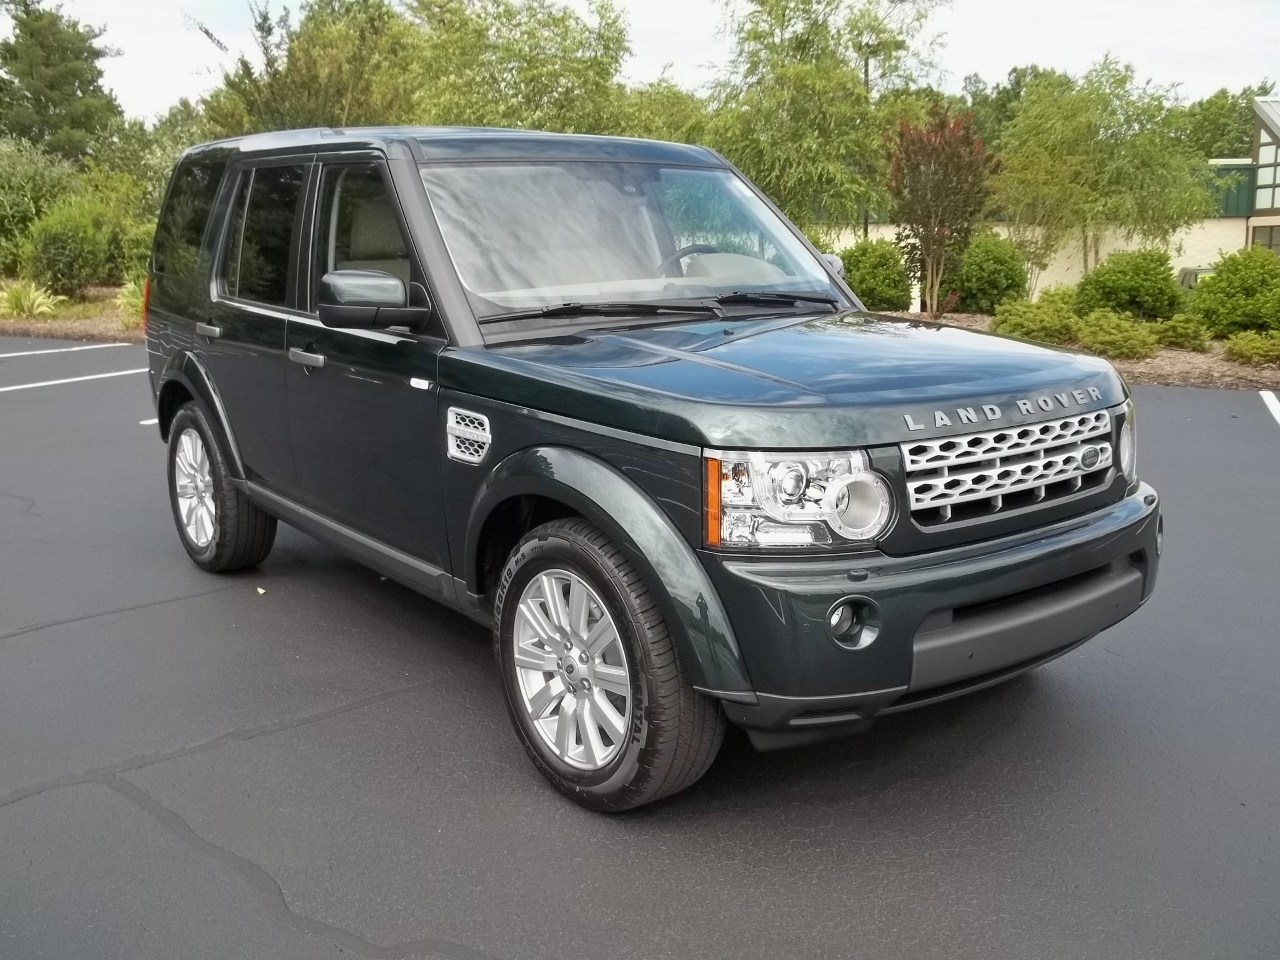 s car discovery sport review landrover original and photo land rover of driver reviews test cost